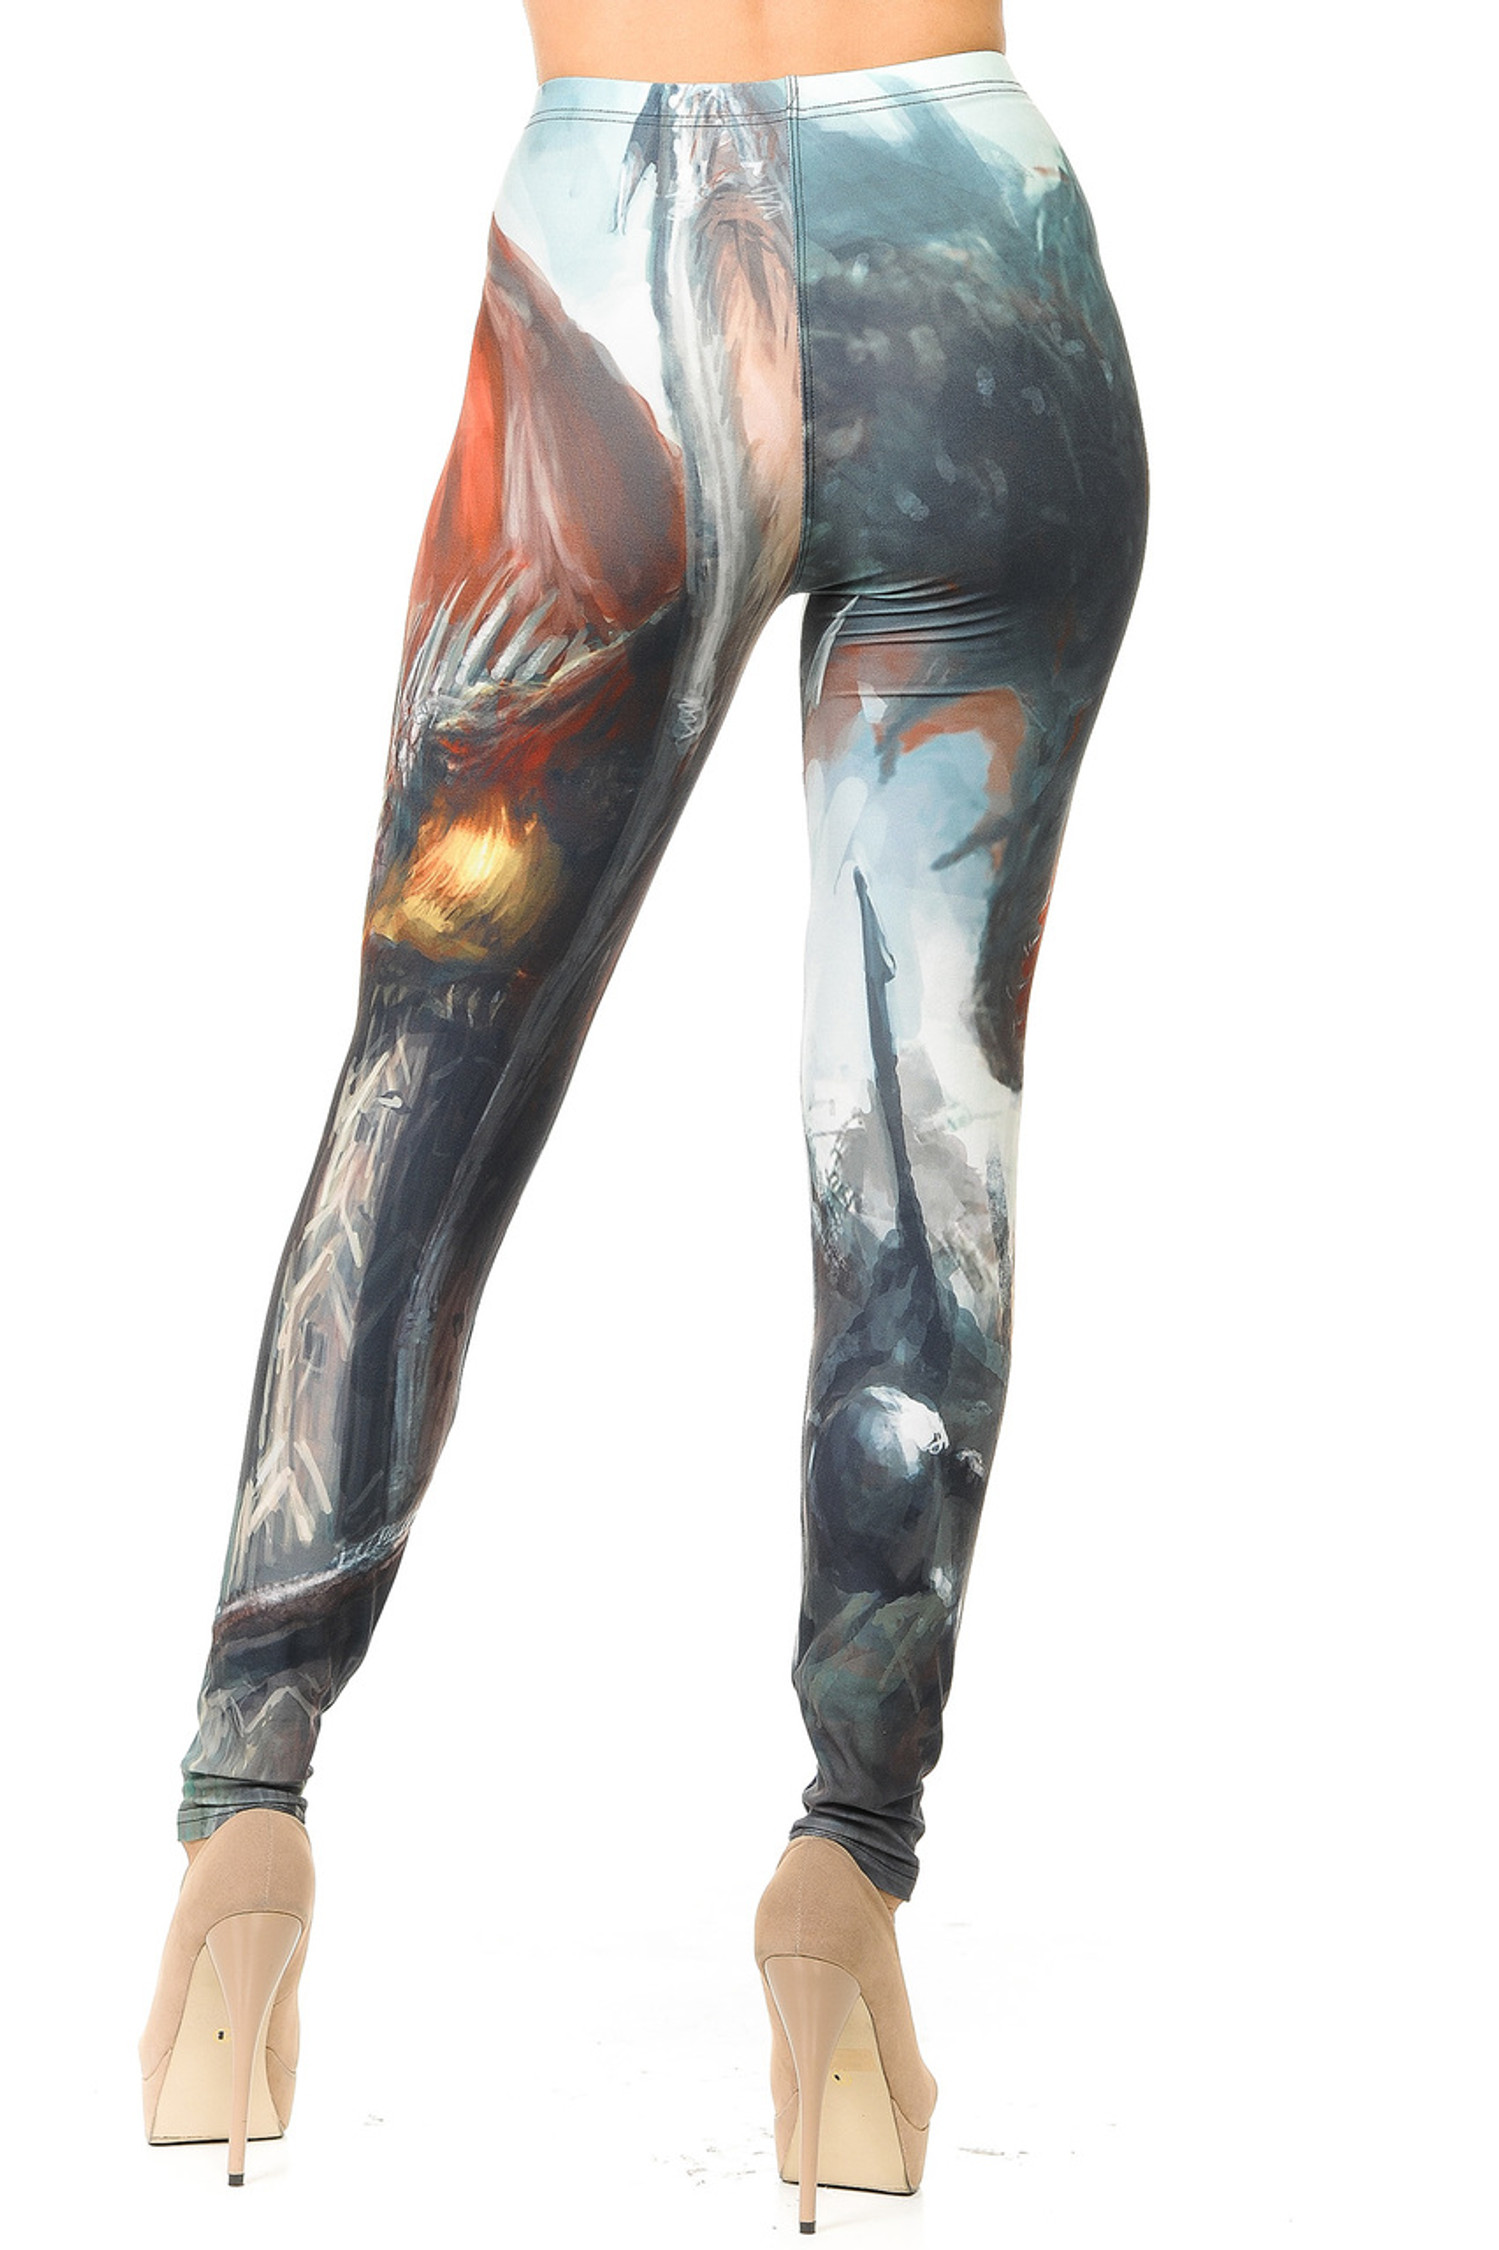 Creamy Soft Feral Dragons Leggings